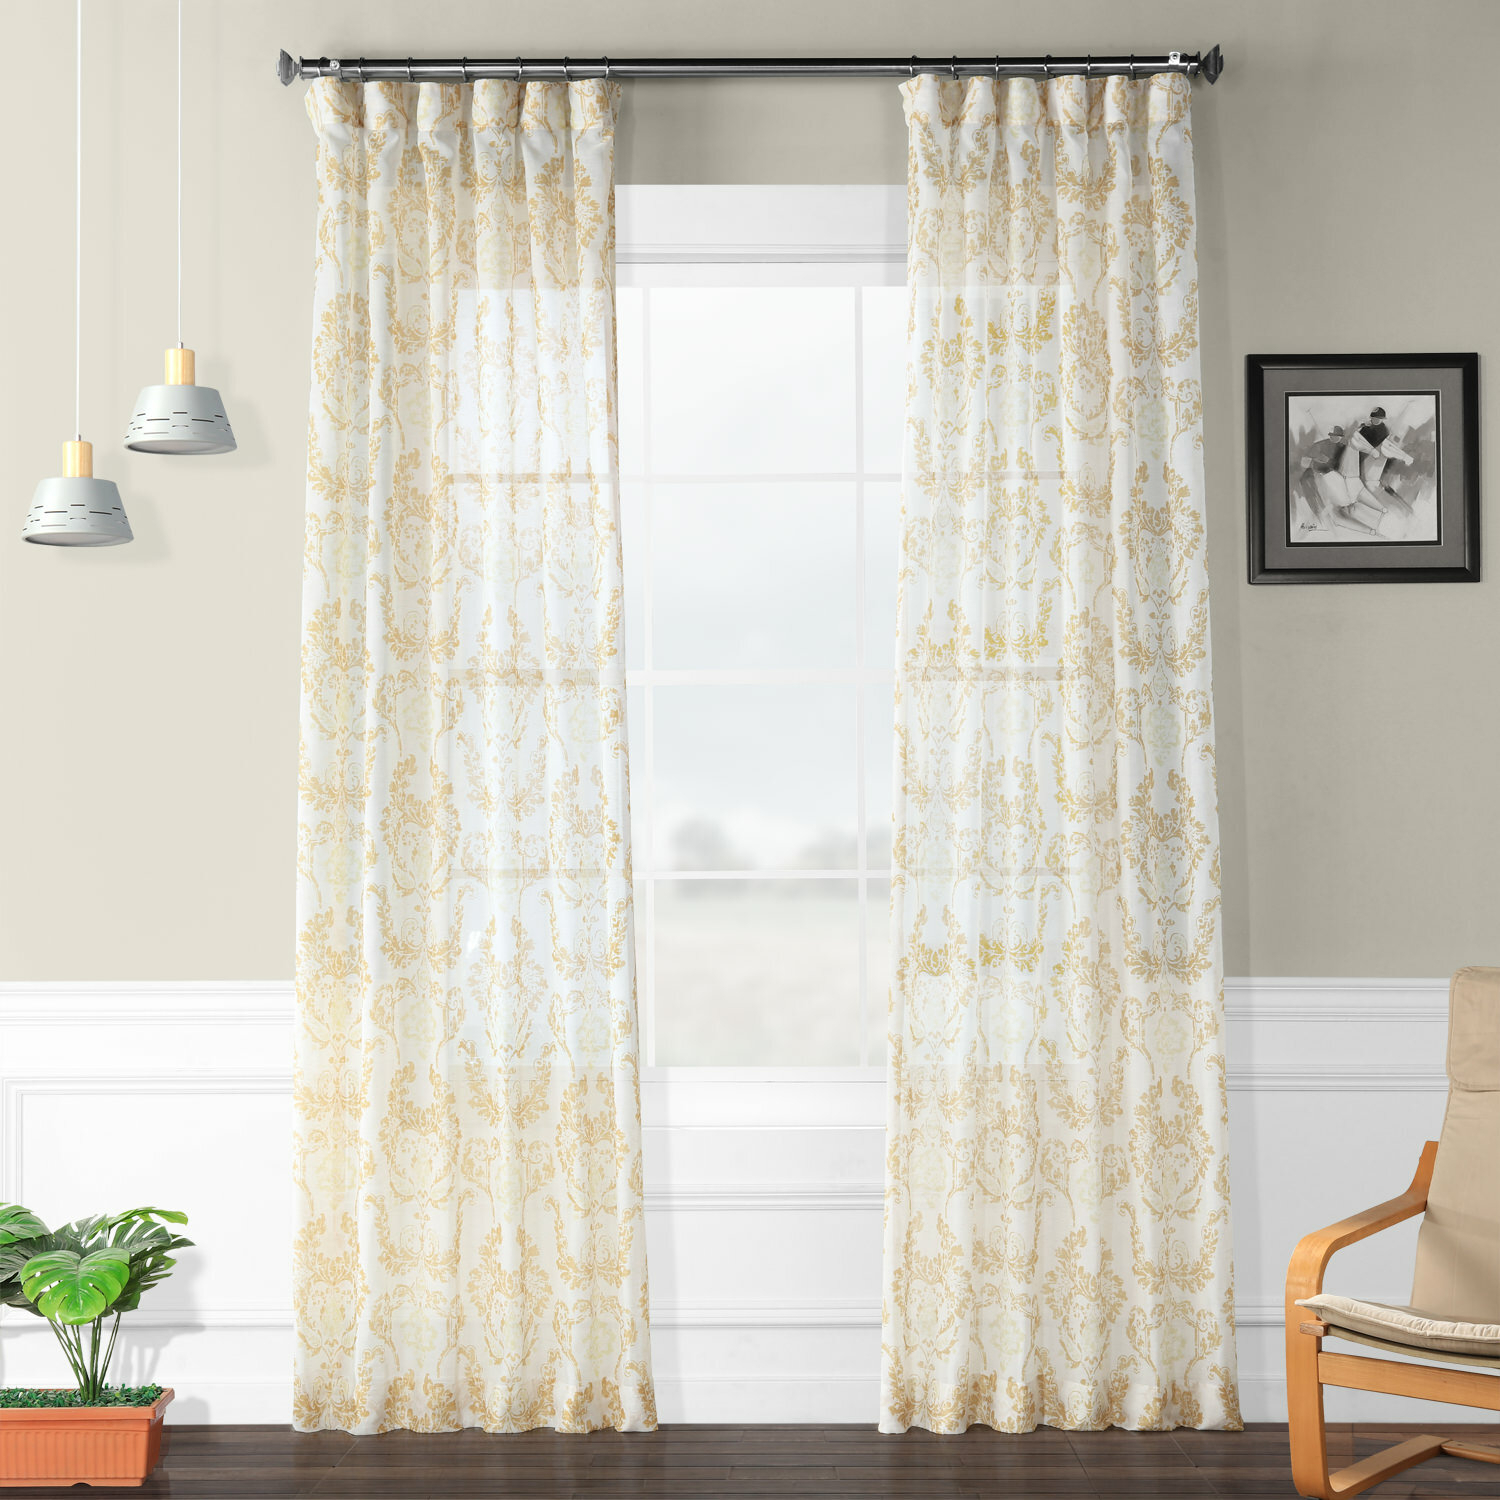 Hayman Printed Faux Linen Polyester Single Curtain Panel Pertaining To Heavy Faux Linen Single Curtain Panels (View 11 of 20)